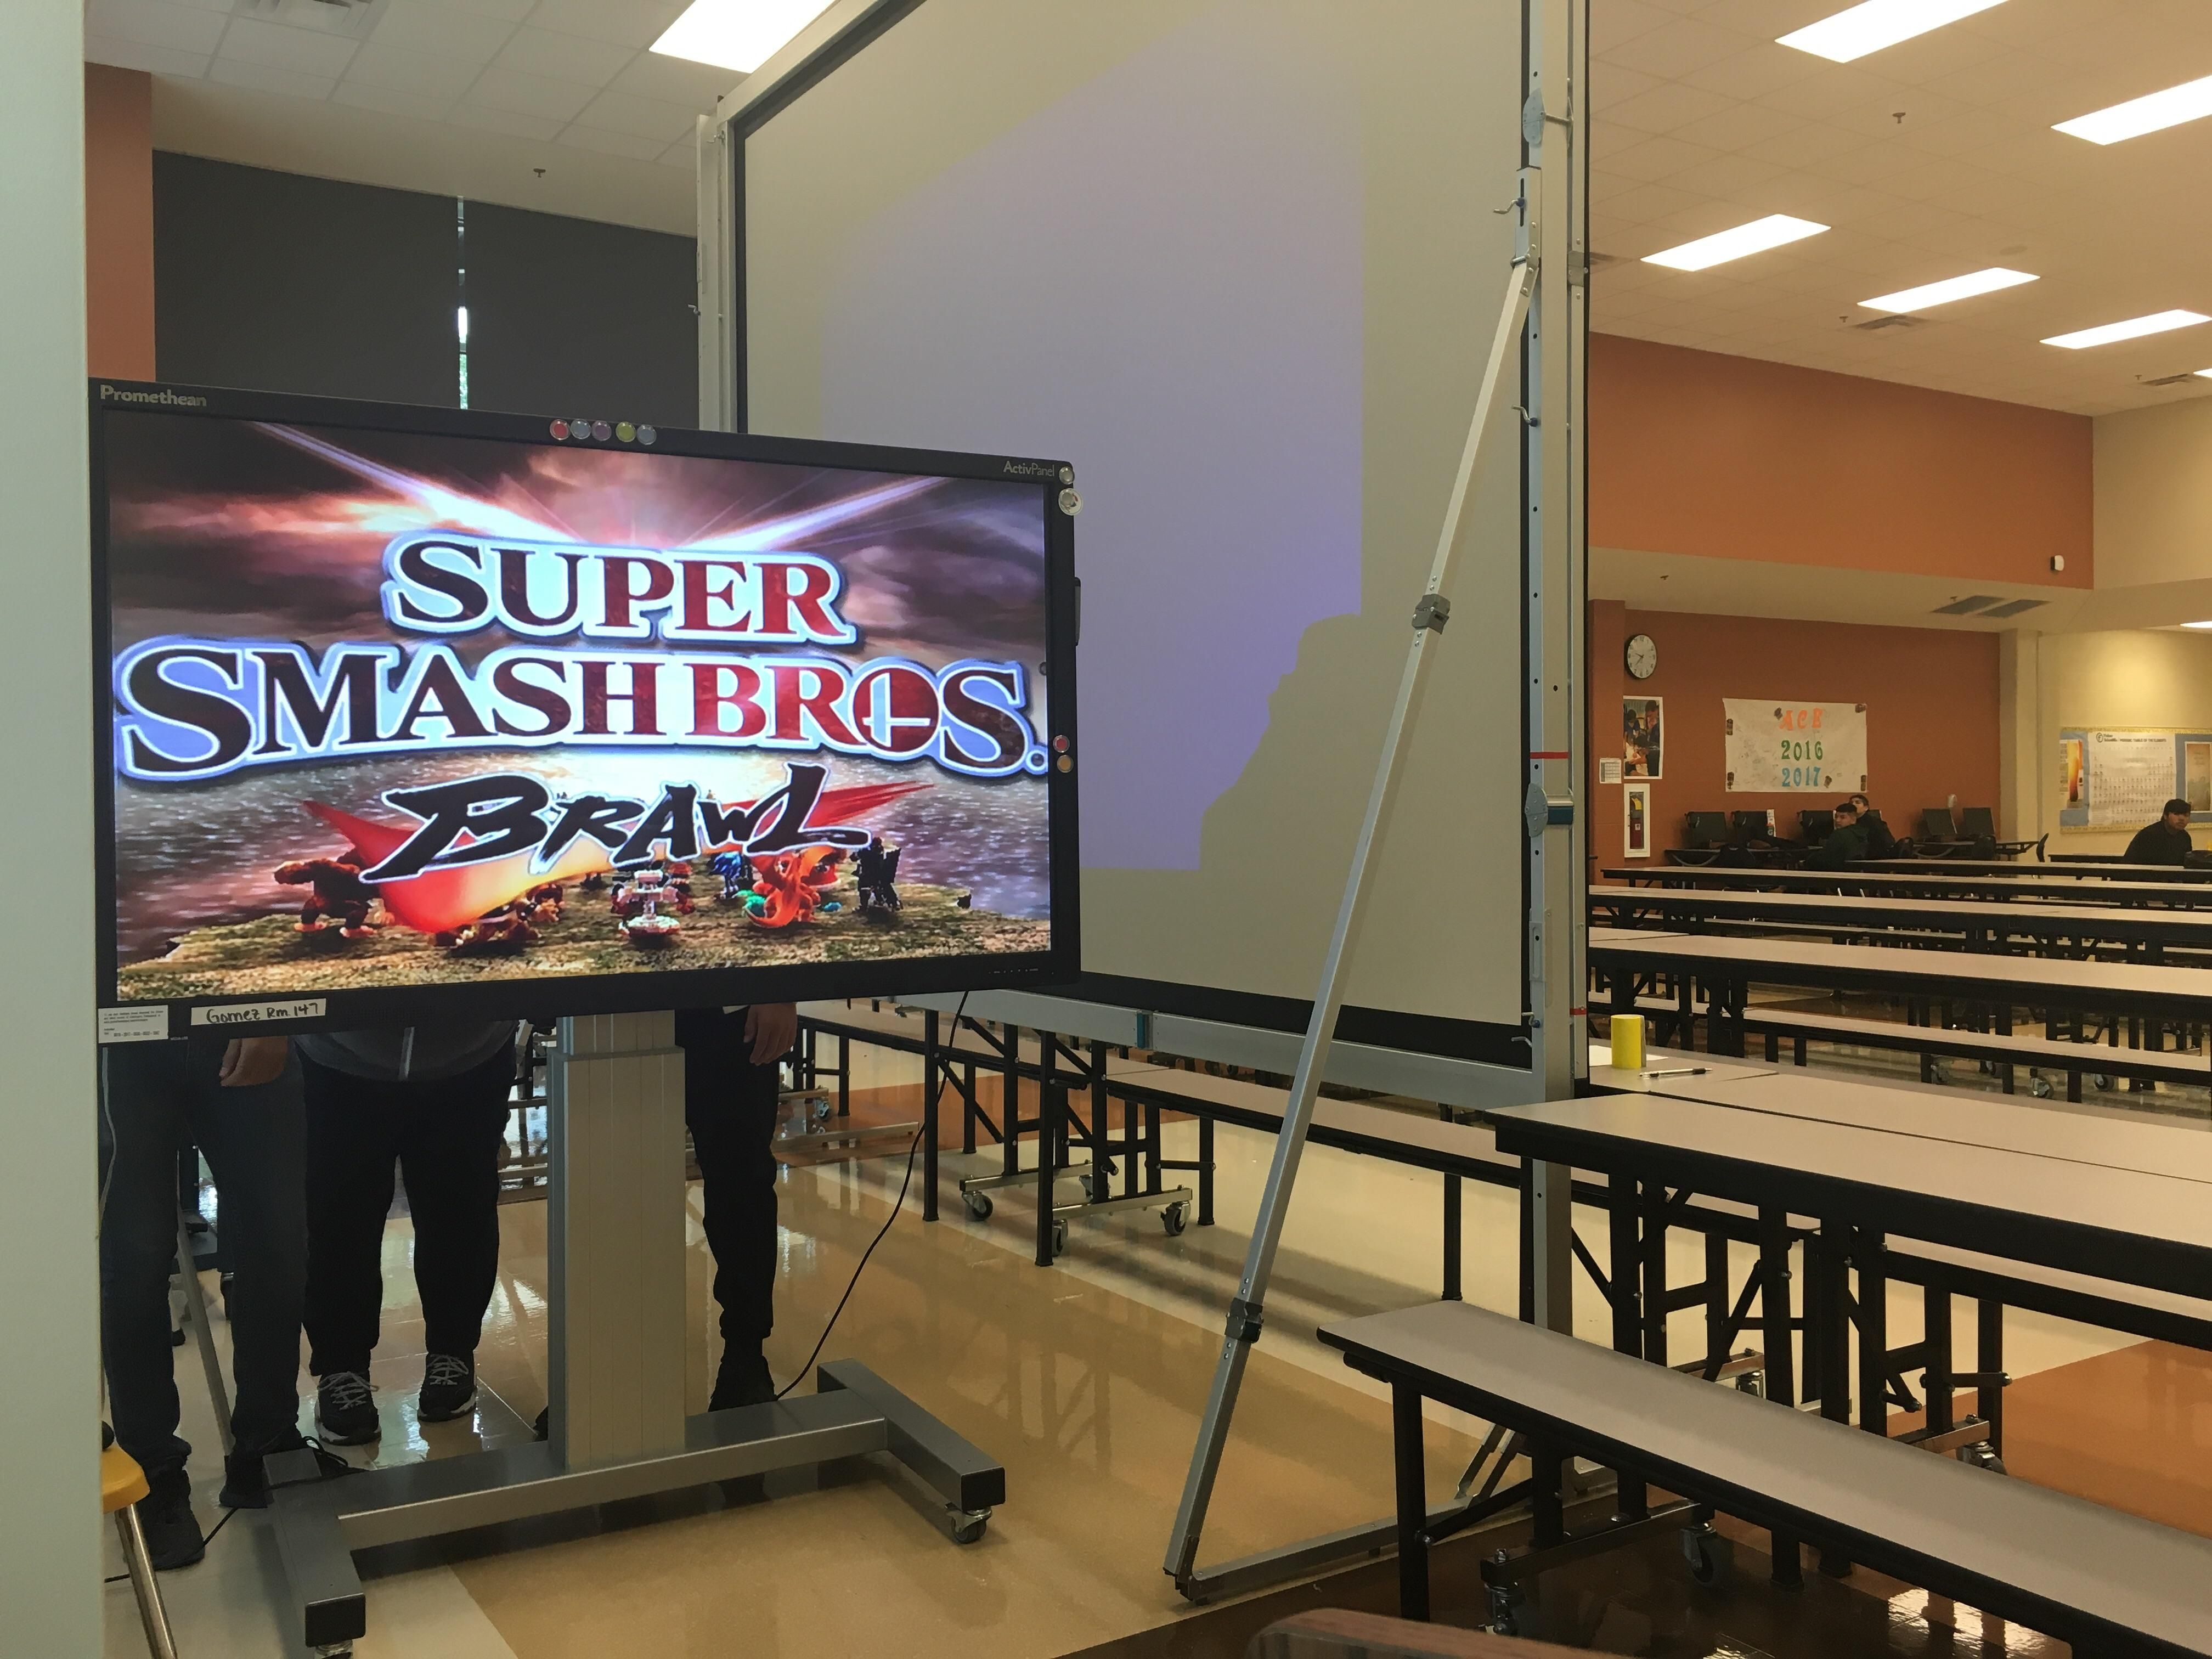 Setting up a tournament at my school (project m) Video